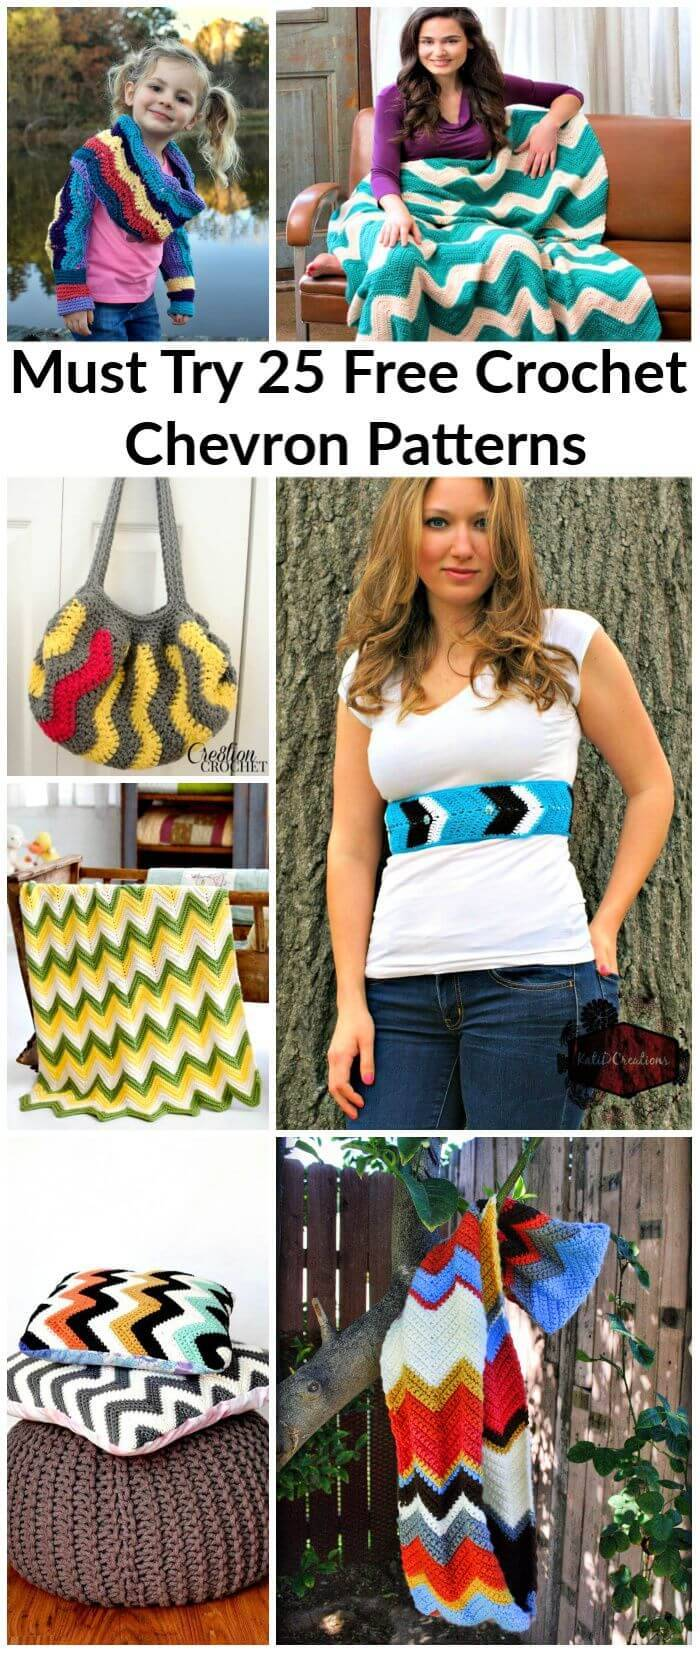 Crochet Chevron Patterns - Must Try 25 Free Crochet Patterns, sharp chevron crochet pattern, Easy Craft Ideas, DIY Crafts